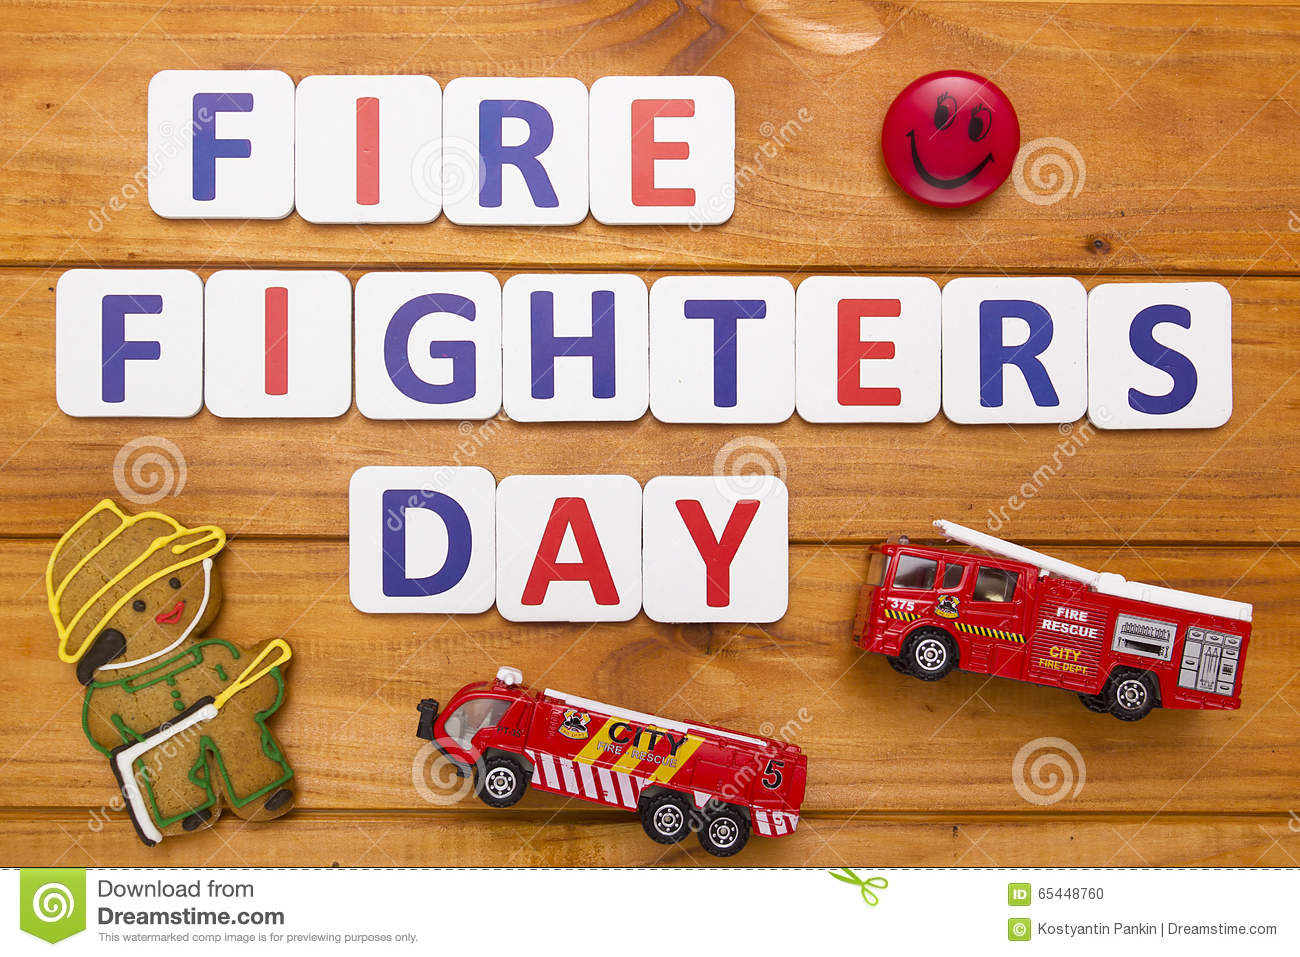 f288467a2ab49 Fire fighters day stock illustration. Illustration of sign - 65448760